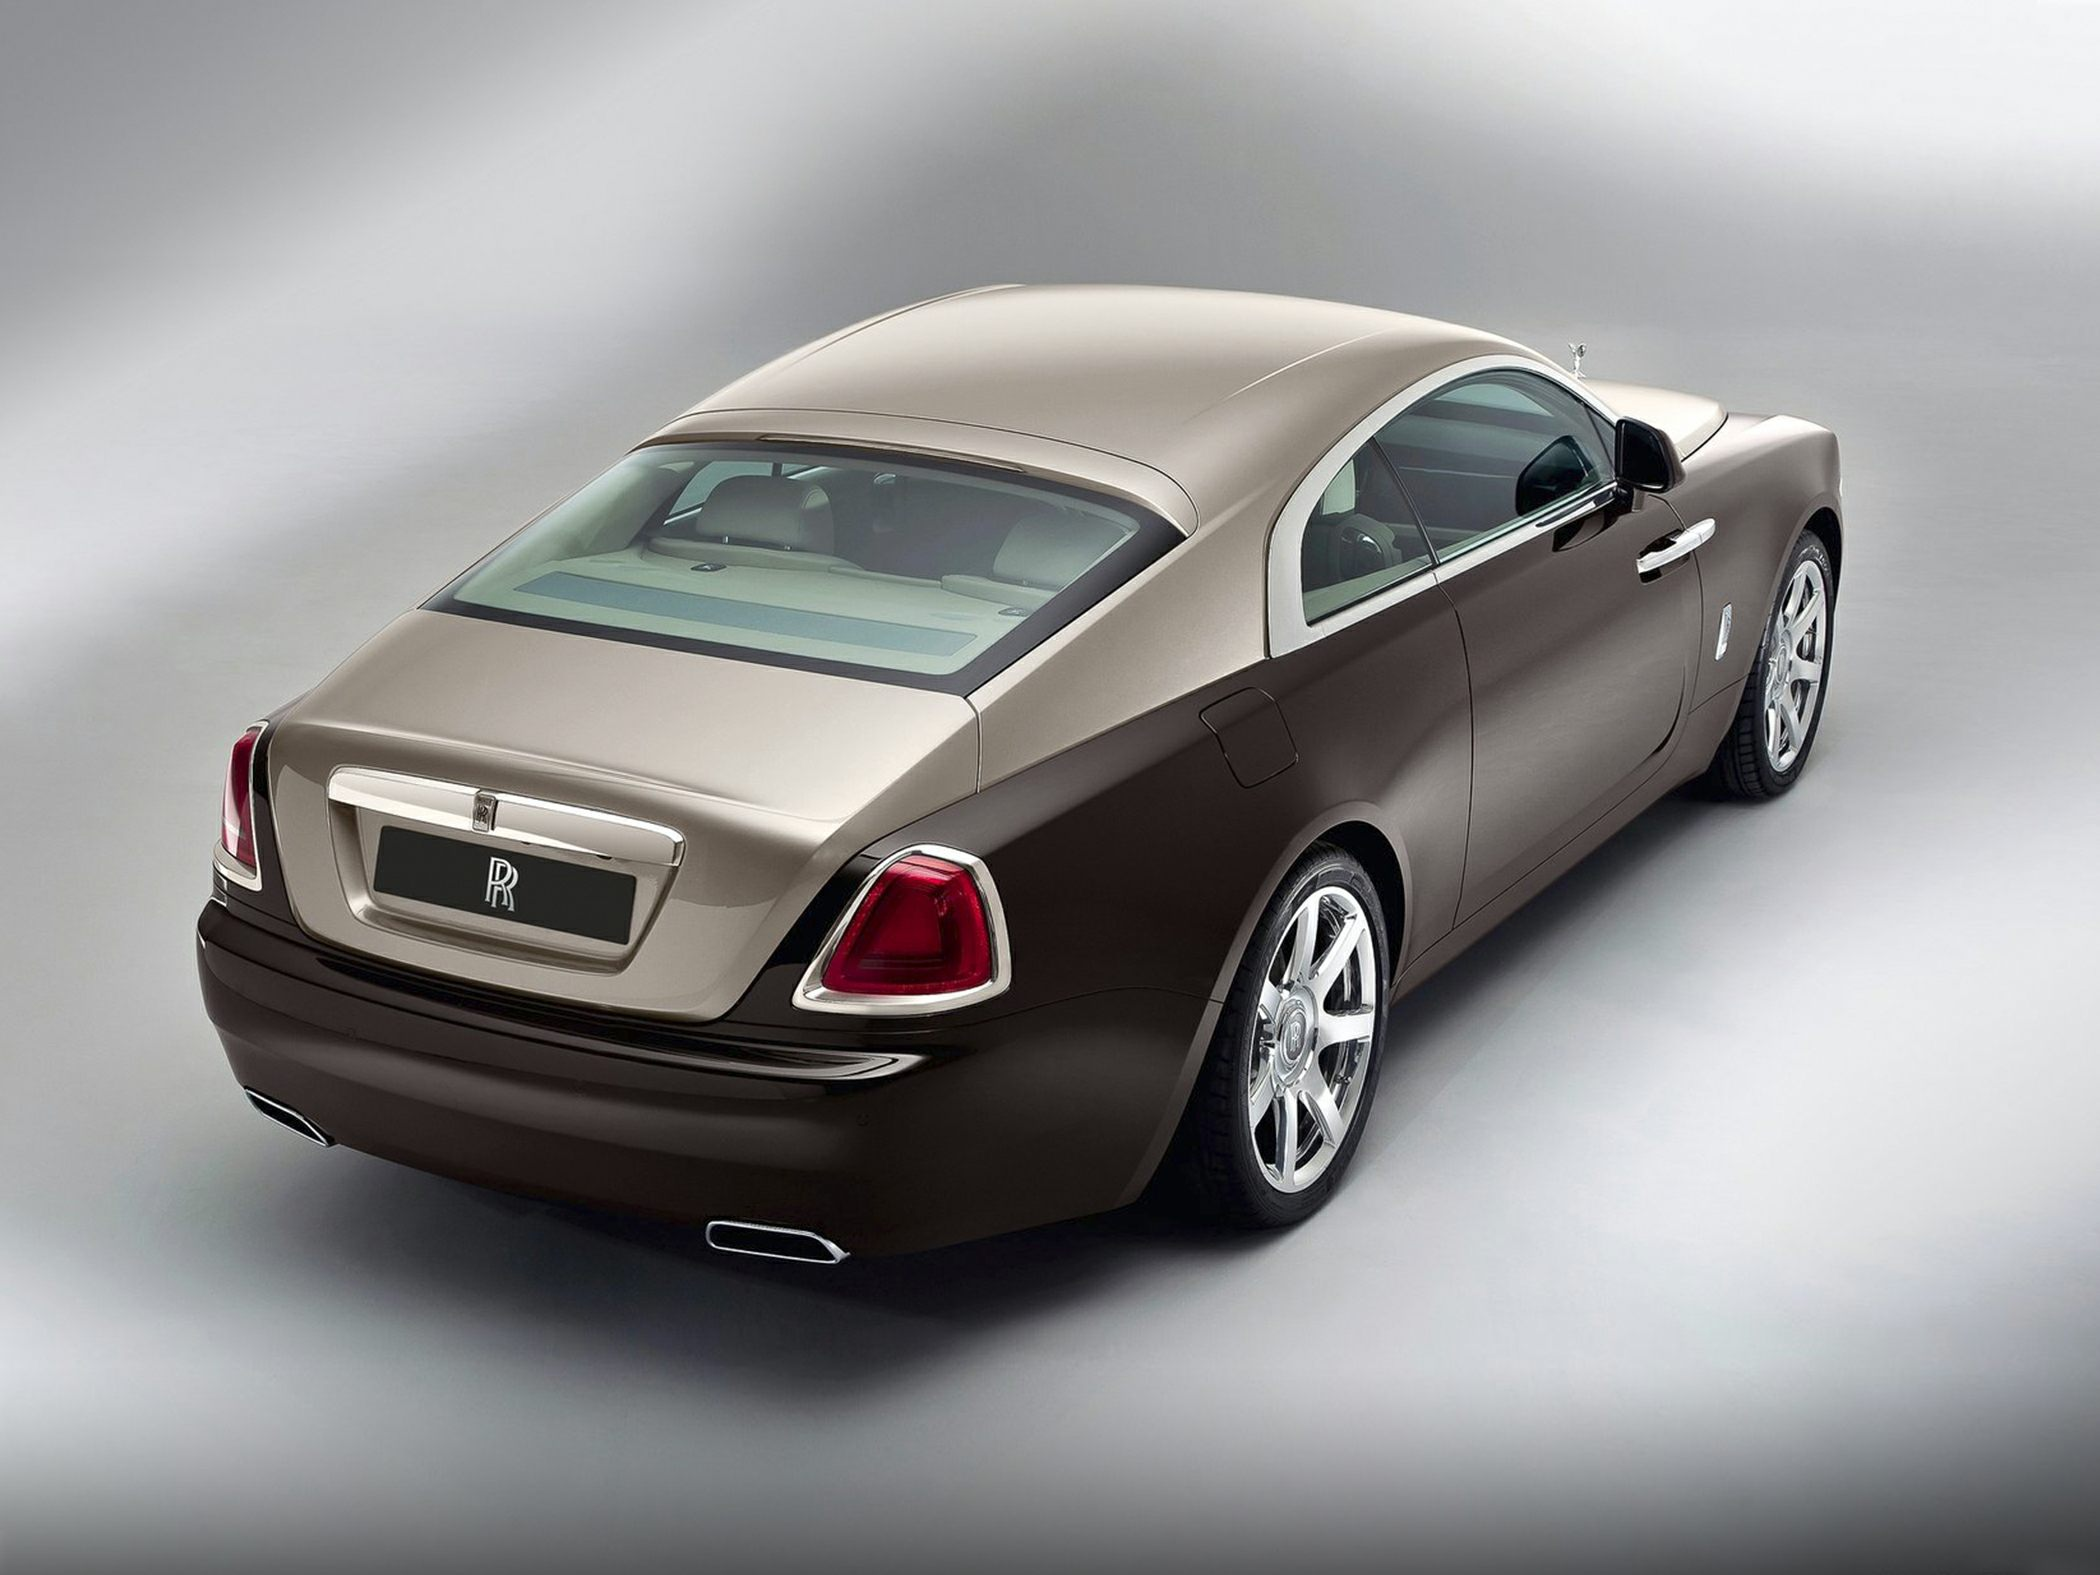 2018 Rolls-Royce Wraith Deals, Prices, Incentives & Leases, Overview - CarsDirect